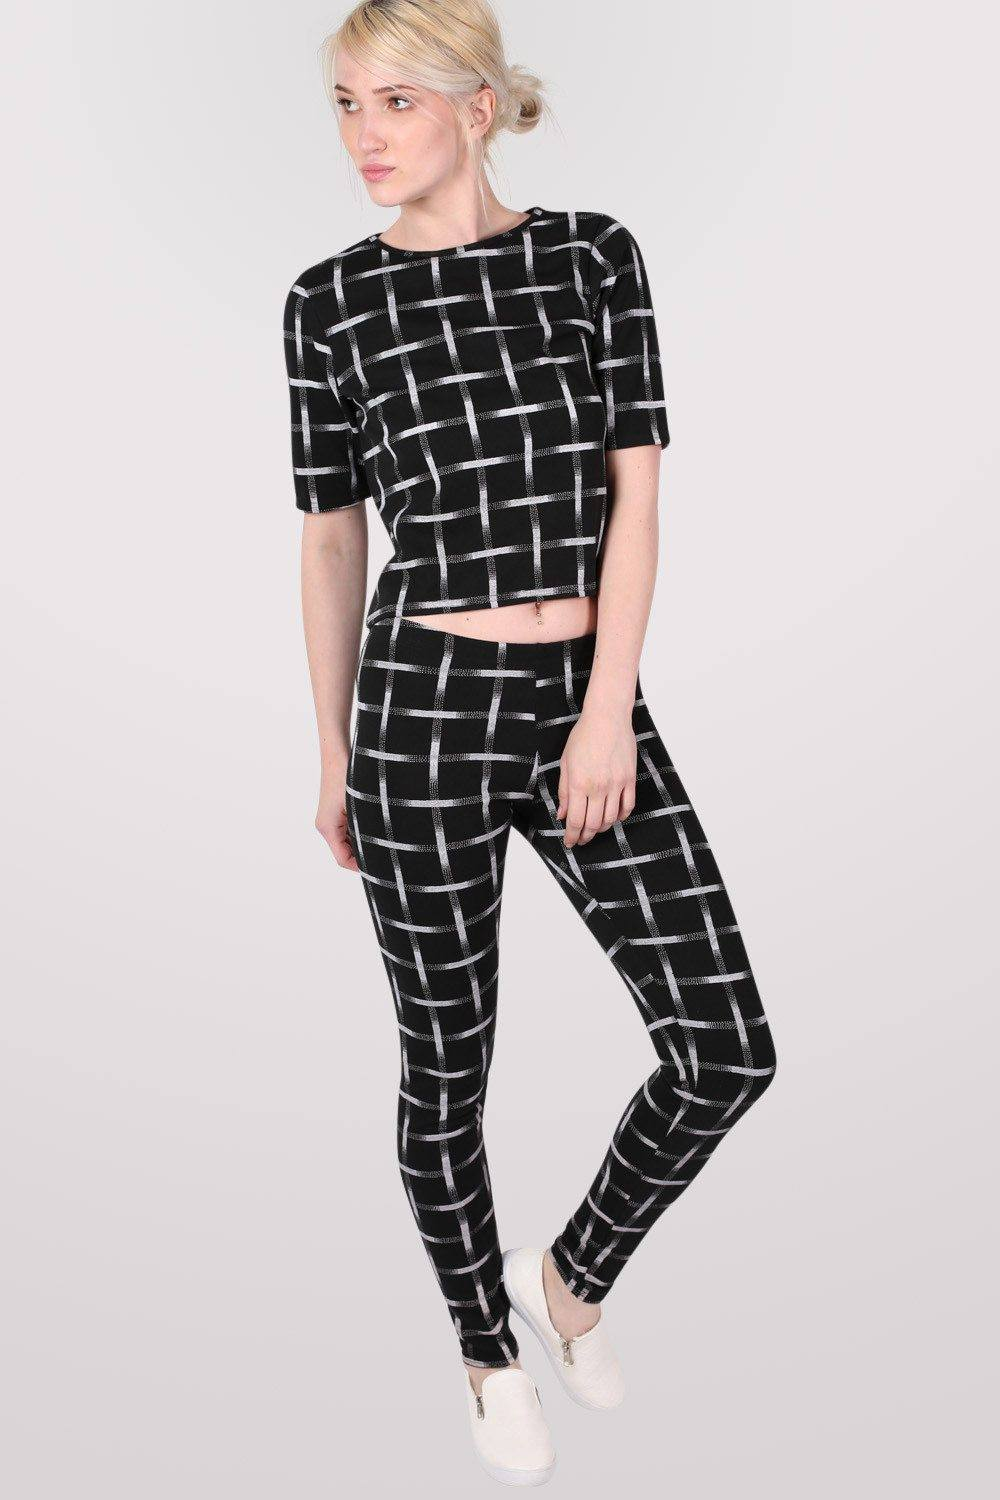 Grid Check Print Leggings in Black 0